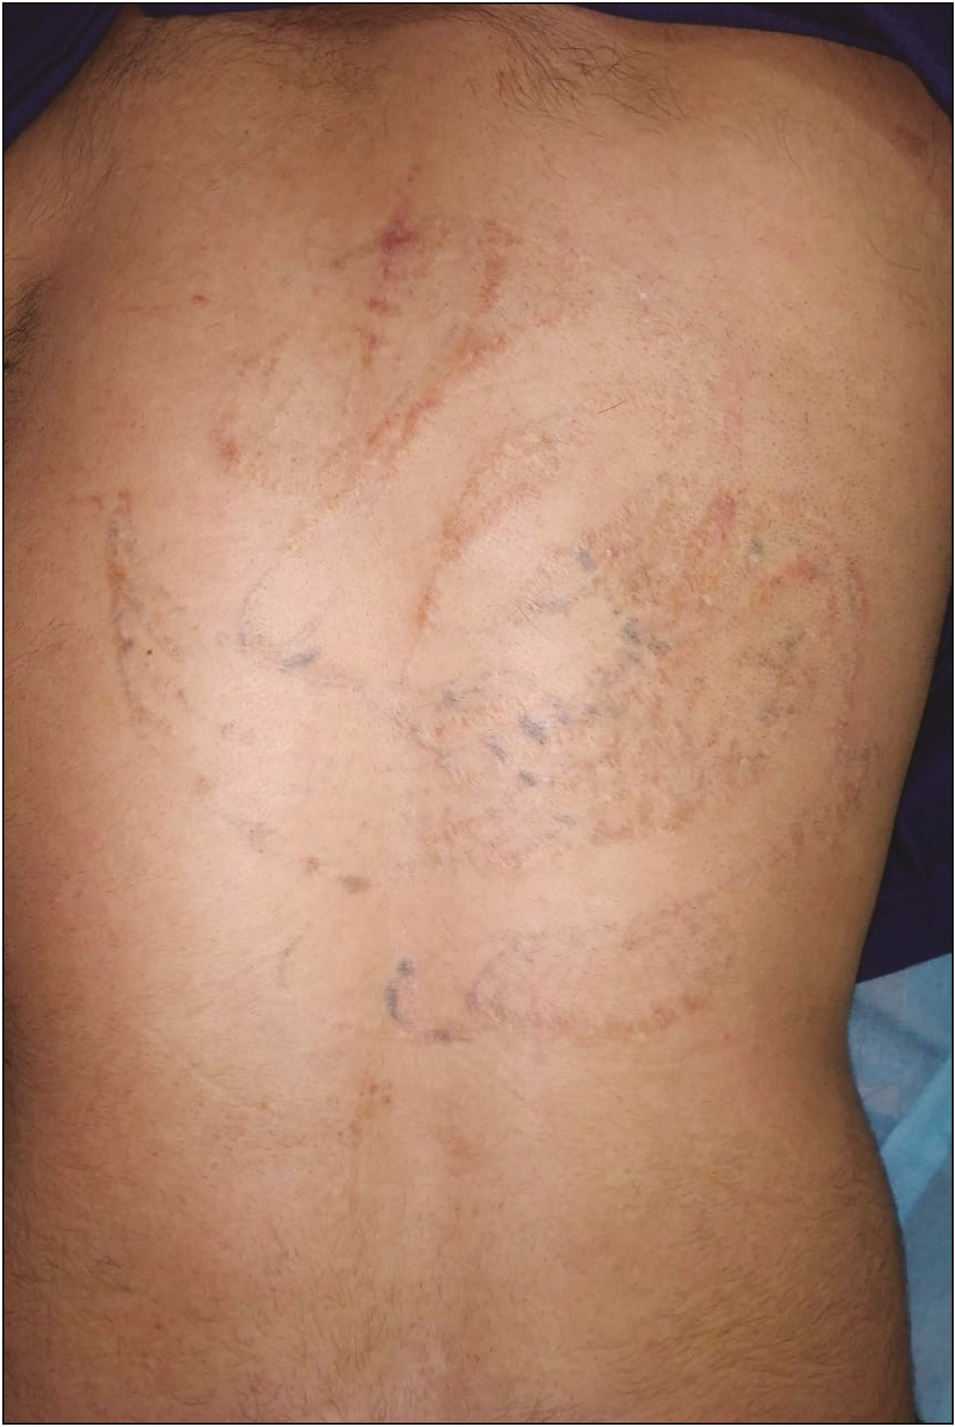 Mini Punch Skin Excision A Newer Novel Approach For Tattoo Removal